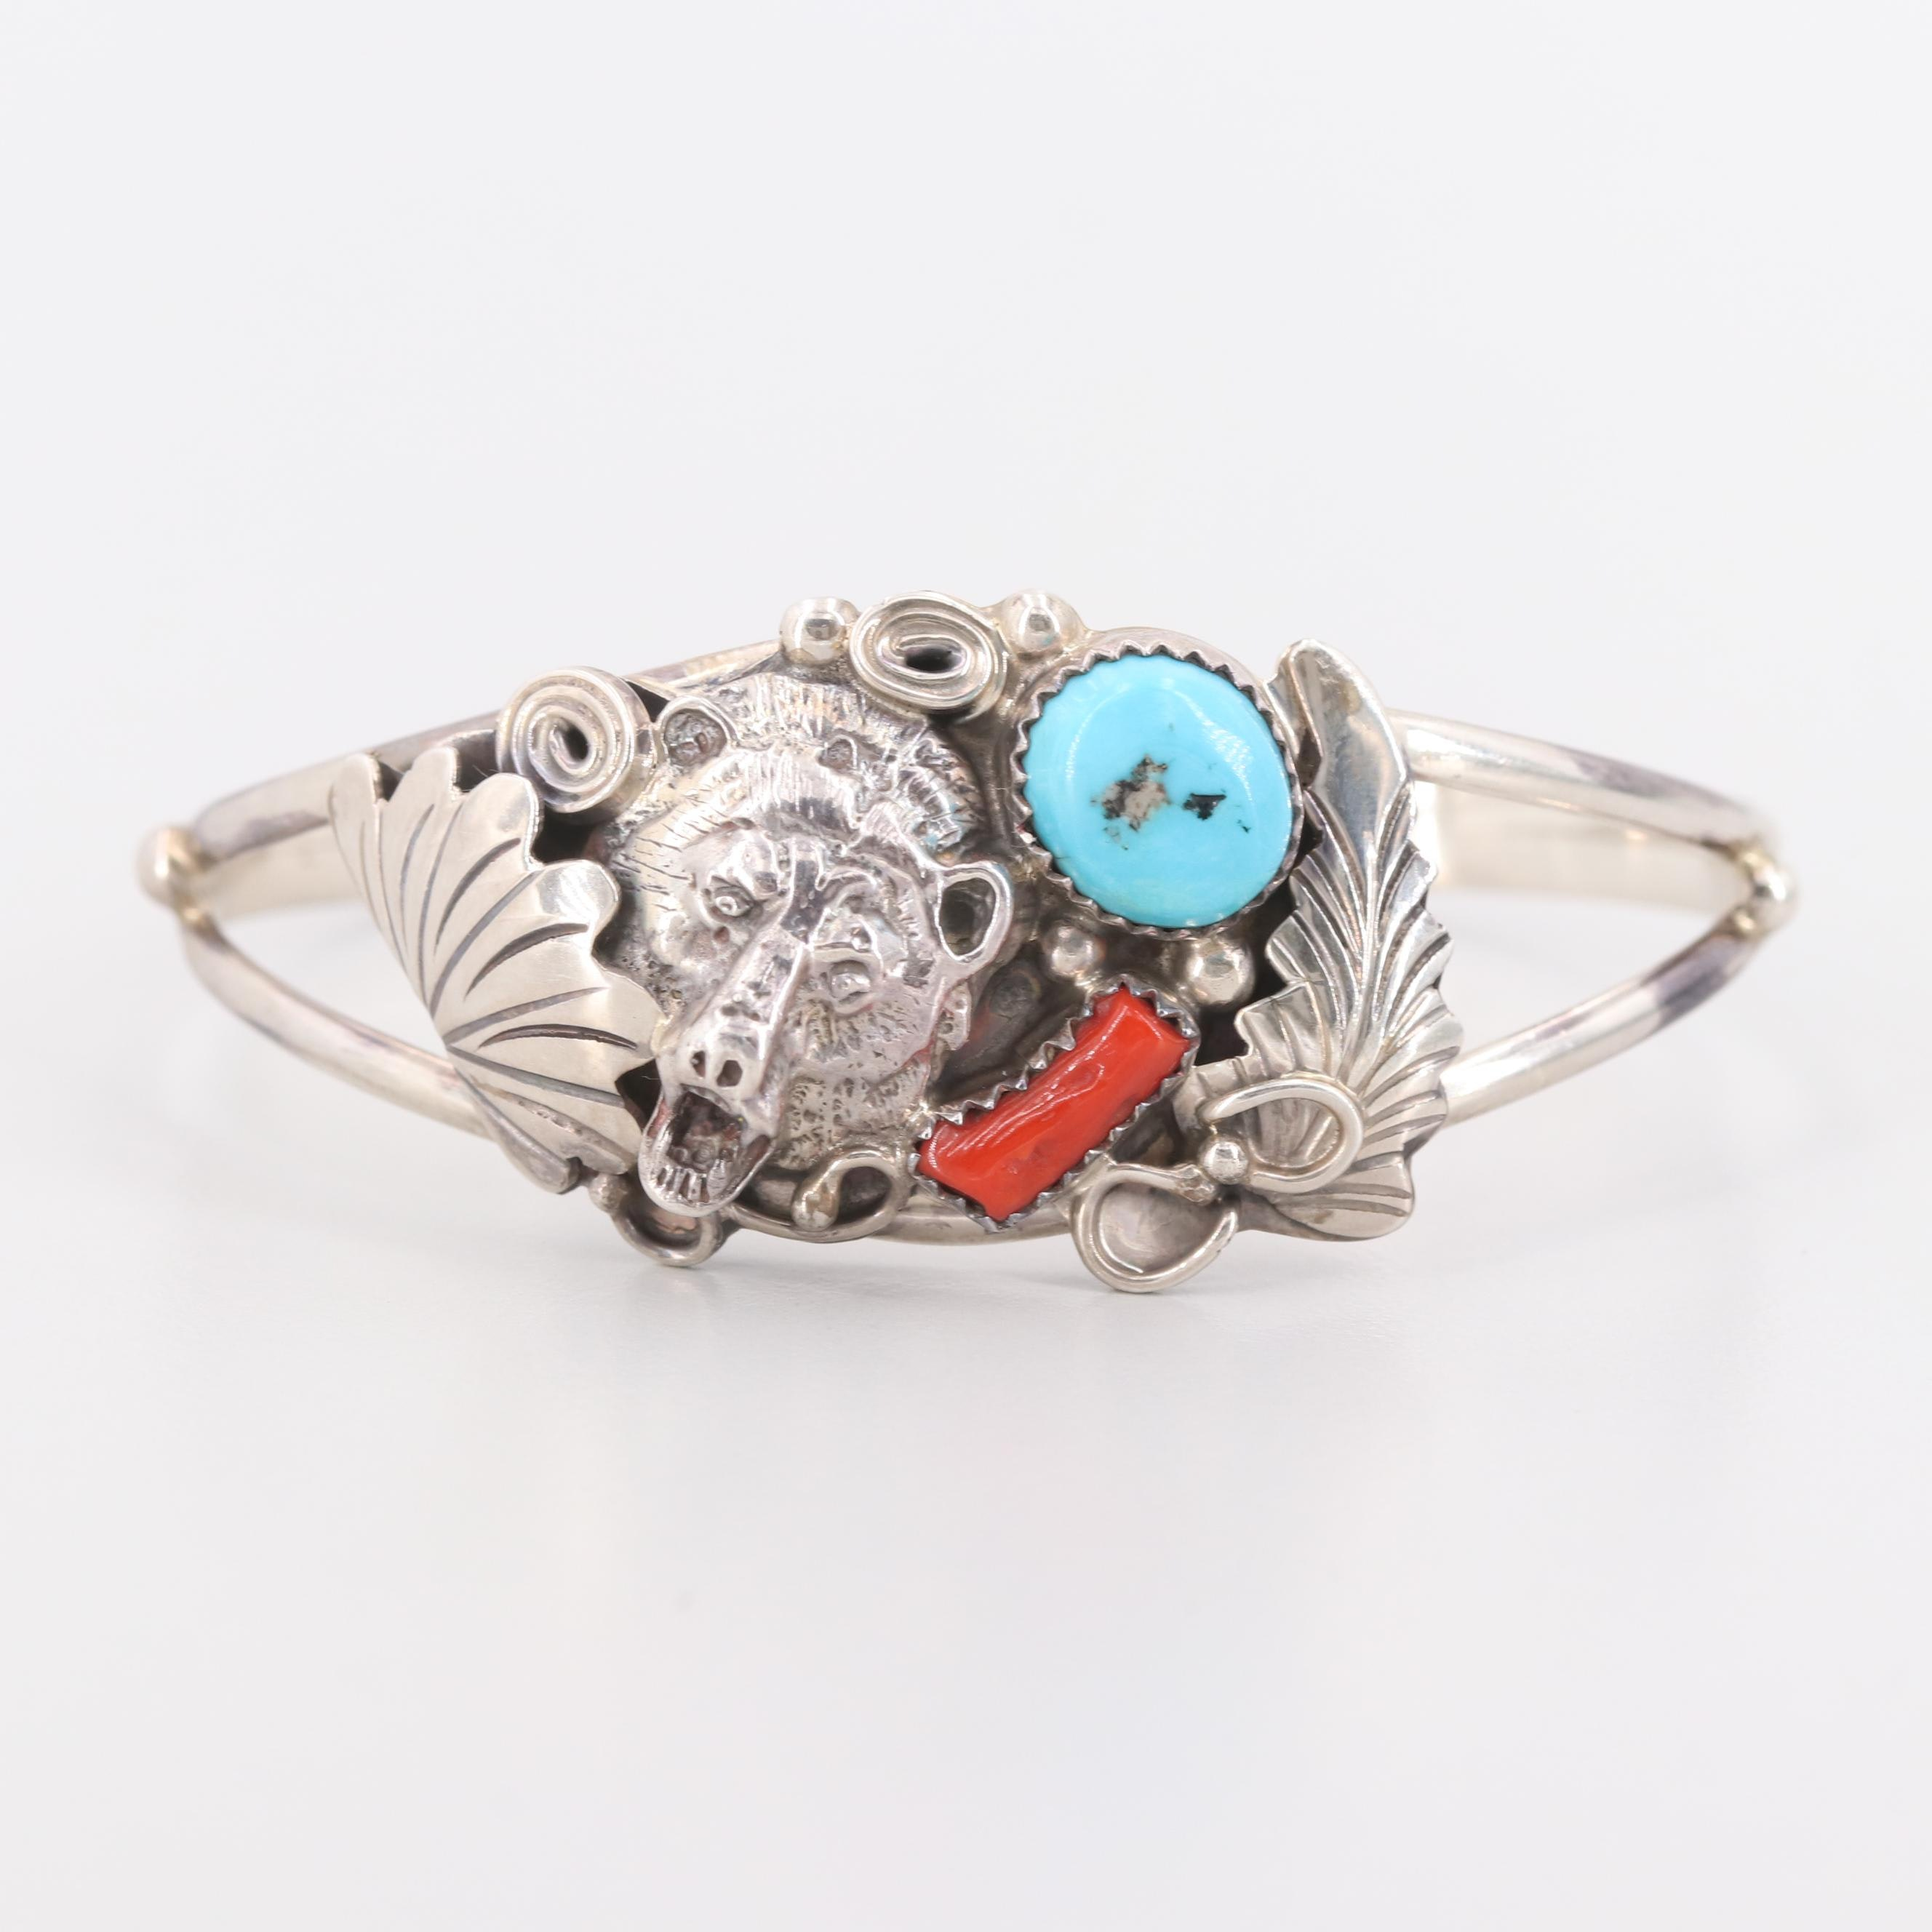 Running Bear Shop Sterling Silver Turquoise and Branch Coral Cuff Bracelet